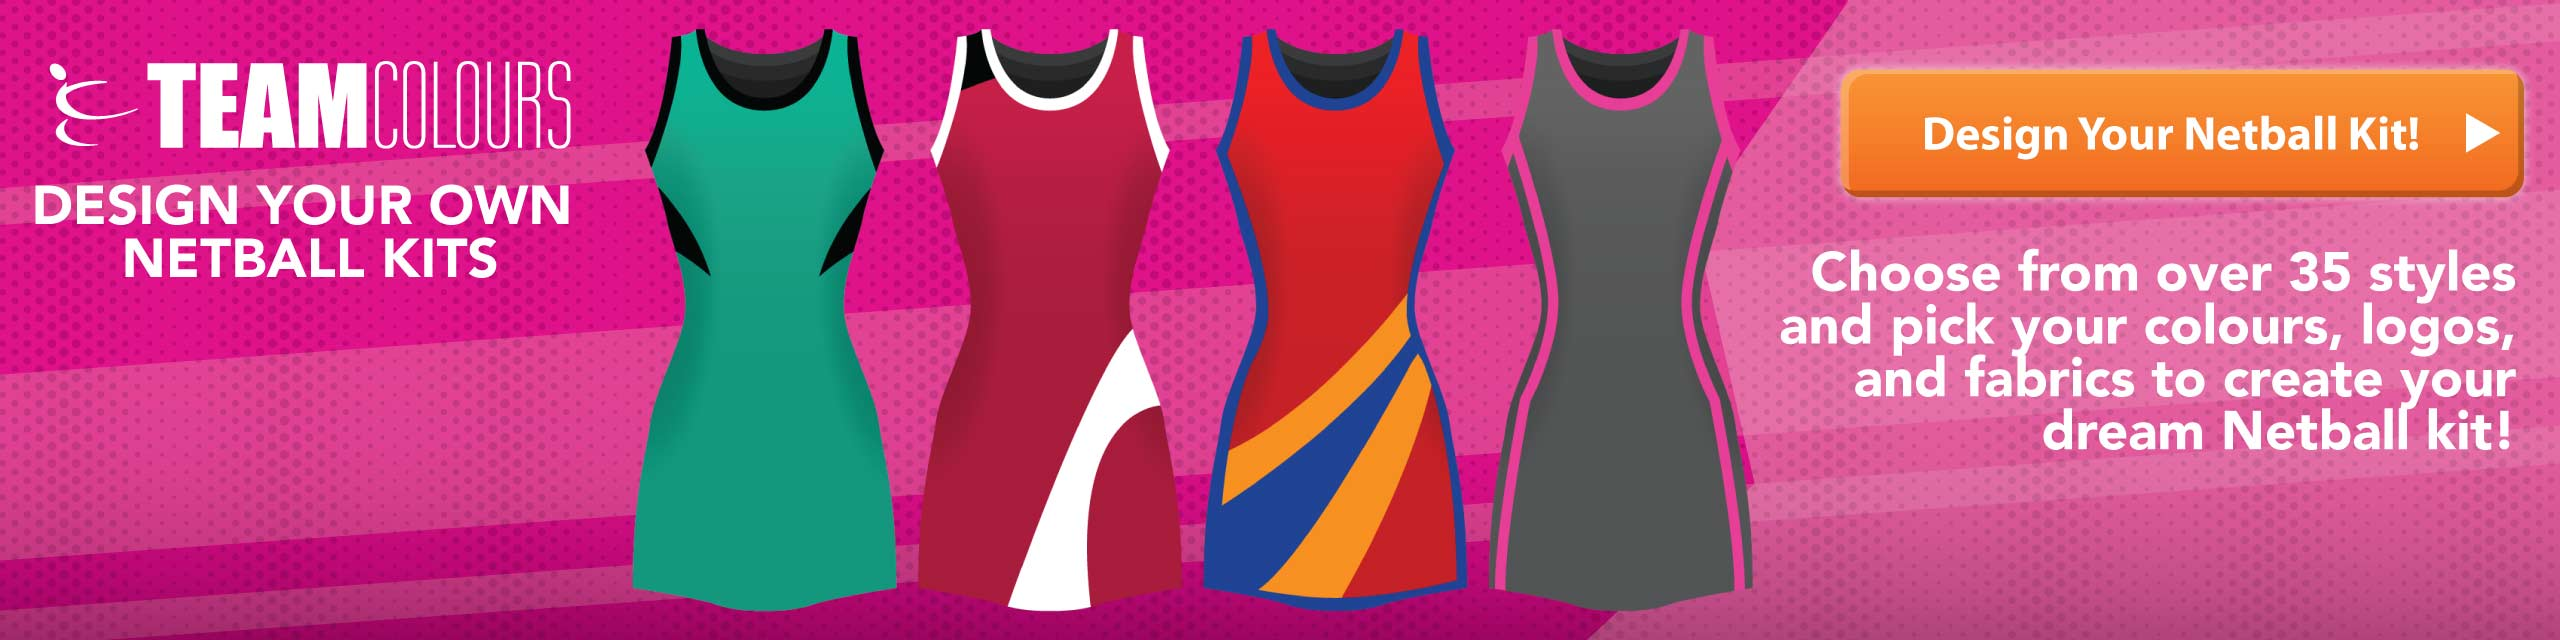 Design you own netball dresses, tops and skirts at Team Colours